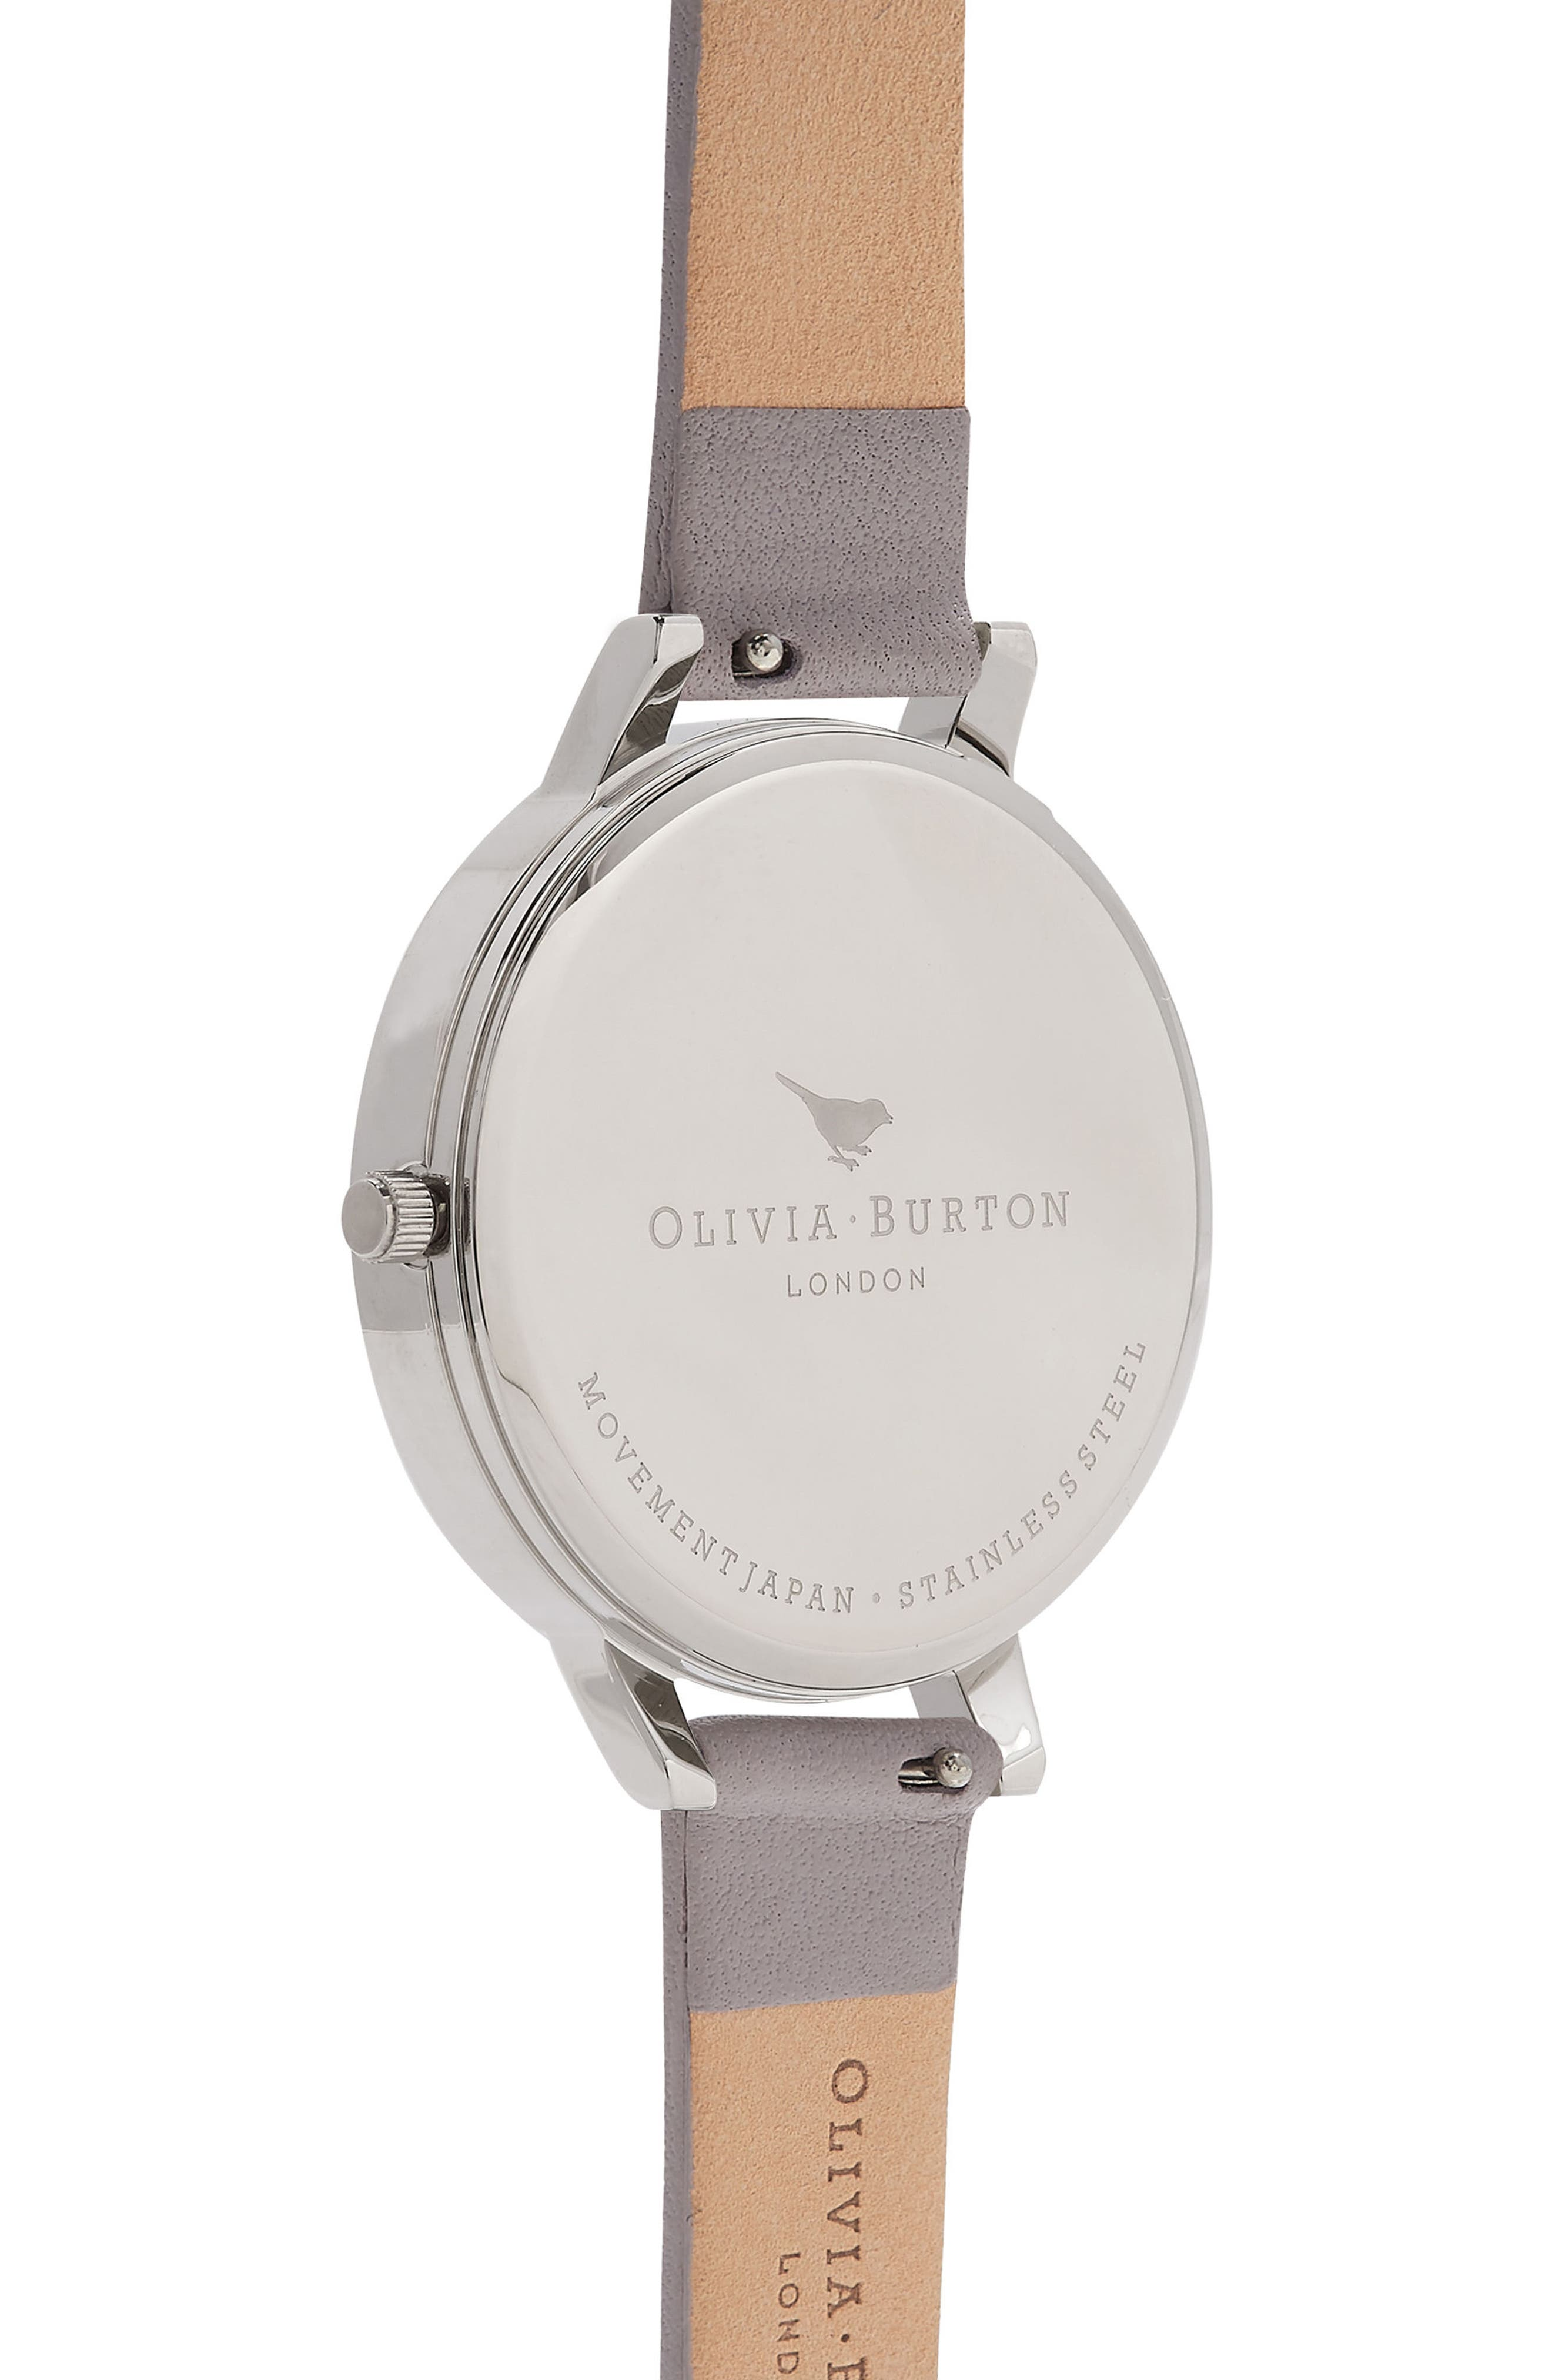 OLIVIA BURTON, Watercolour Florals Leather Strap Watch, 38mm, Alternate thumbnail 3, color, GREY/ WHITE/ FLORAL/ SILVER